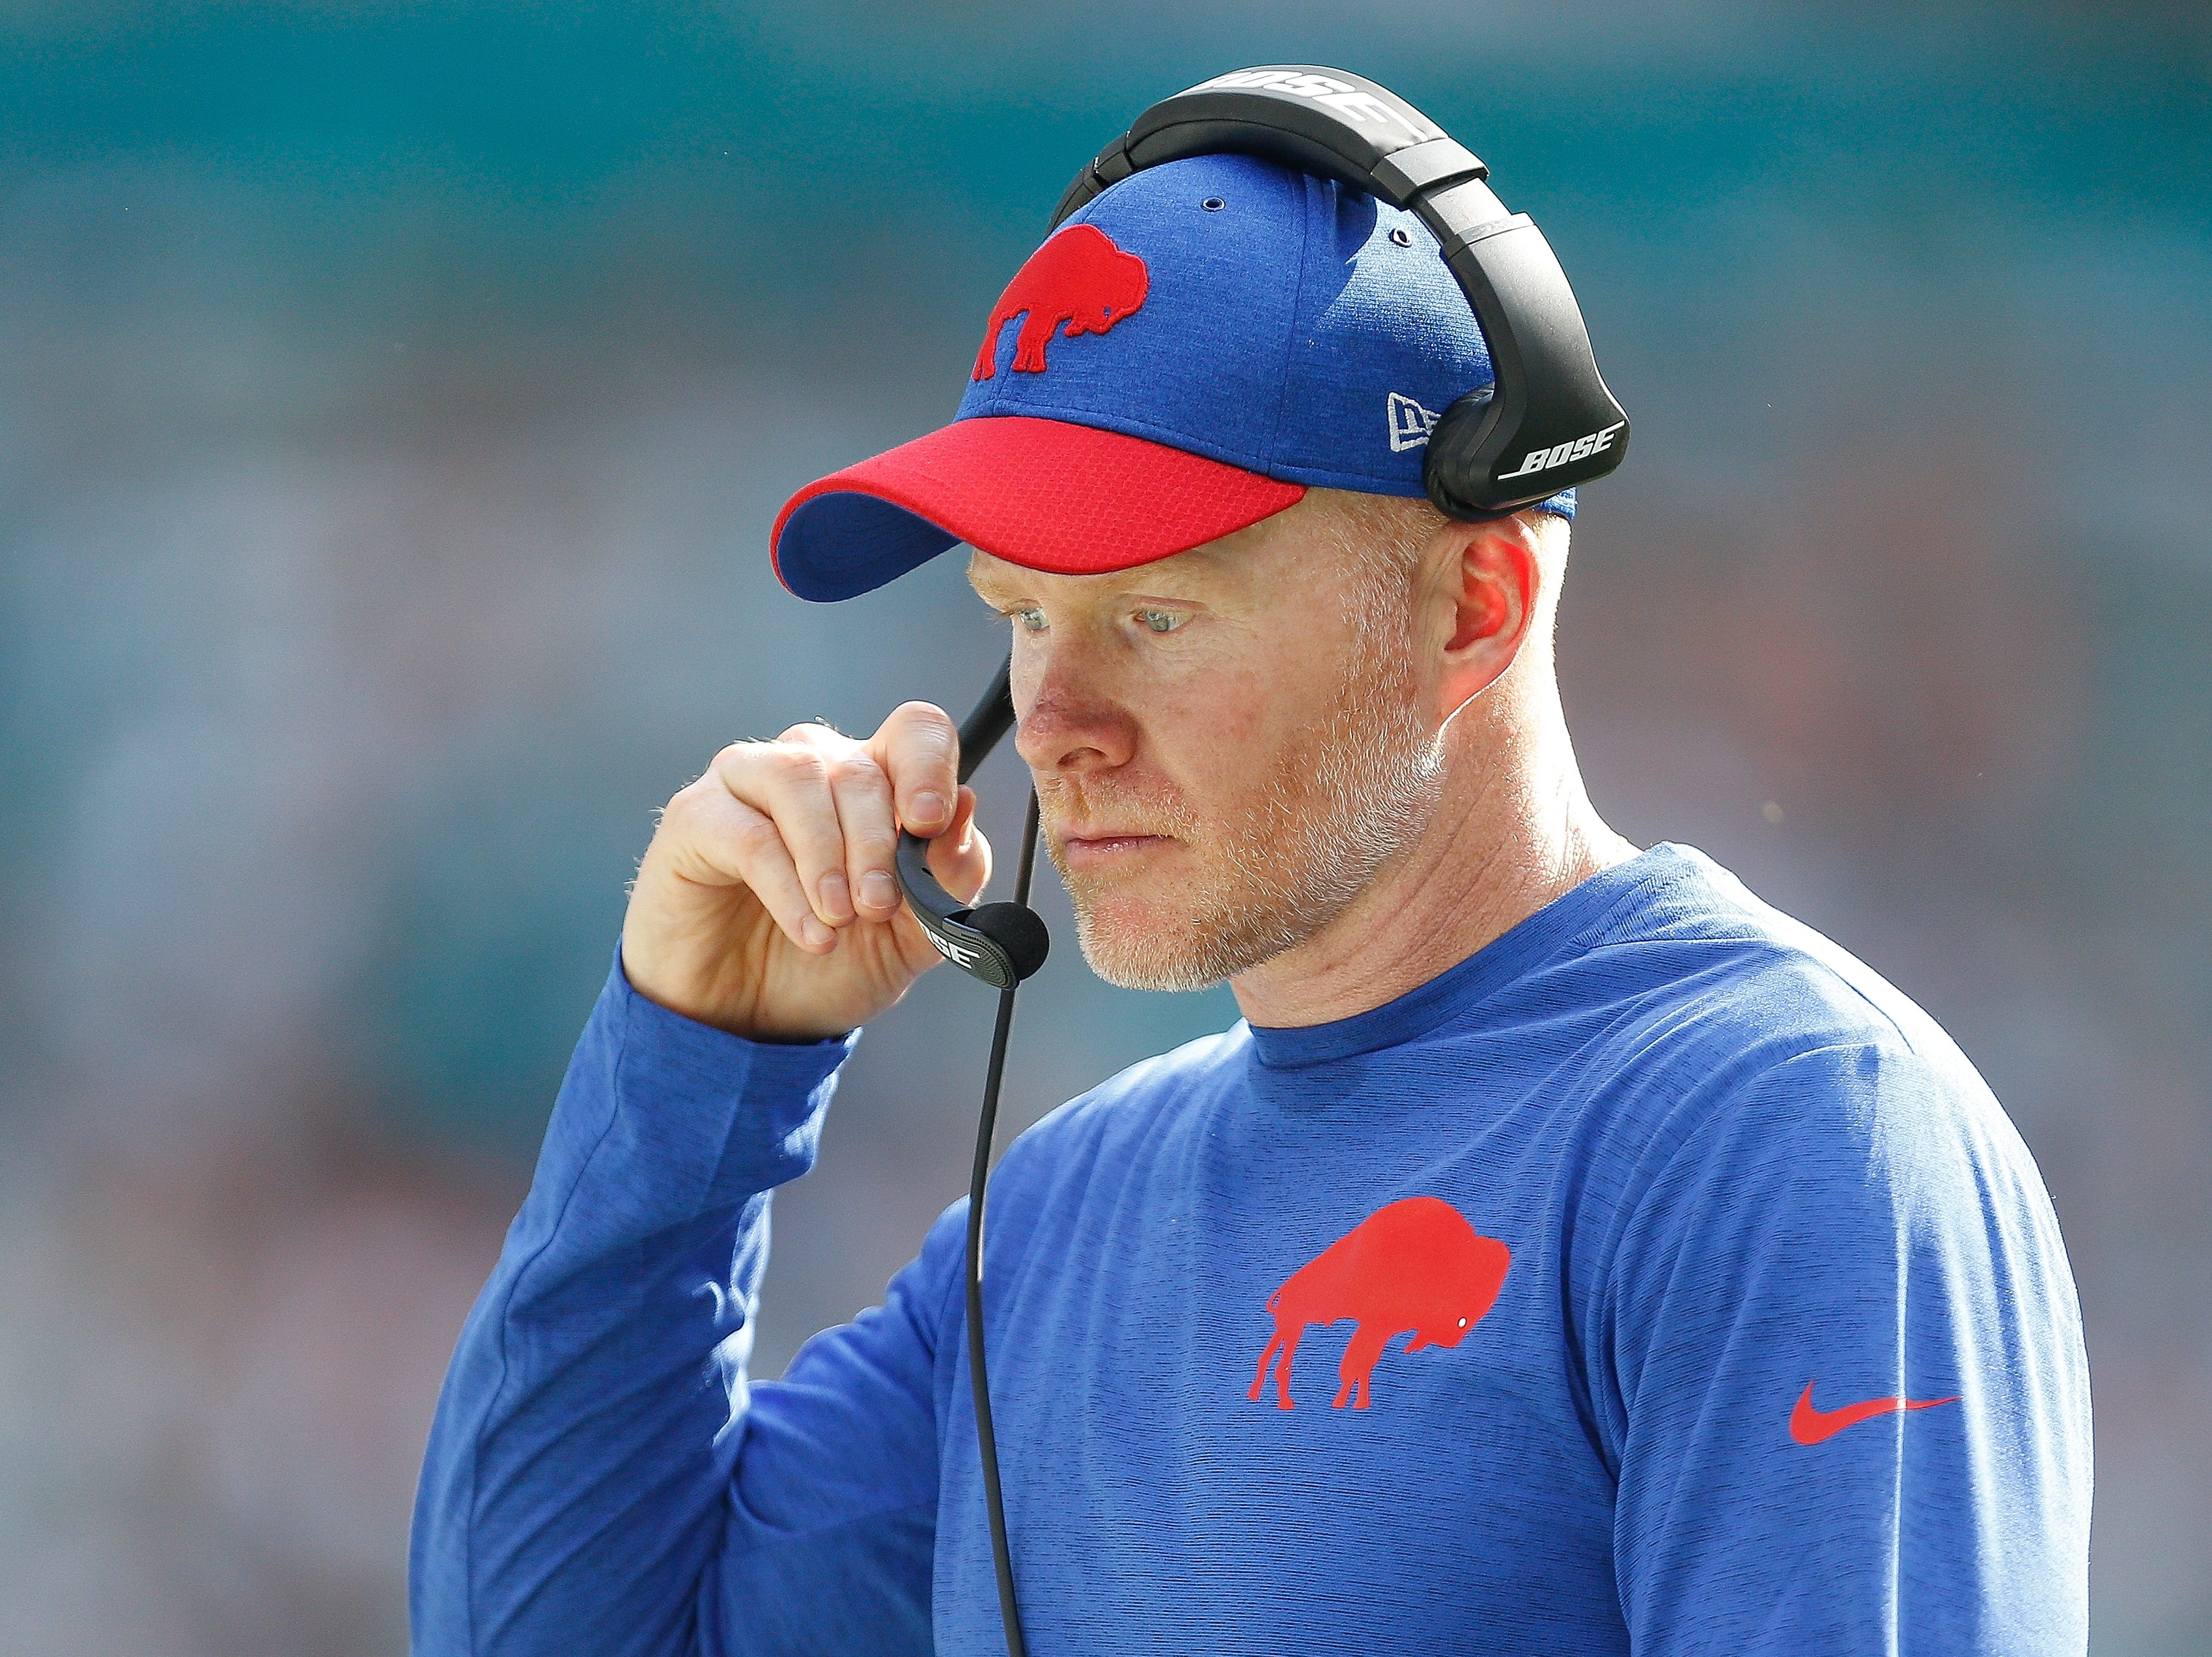 MIAMI, FL - DECEMBER 02:  Head coach Sean McDermott of the Buffalo Bills looks on against the Miami Dolphins during the first half at Hard Rock Stadium on December 2, 2018 in Miami, Florida.  (Photo by Michael Reaves/Getty Images)